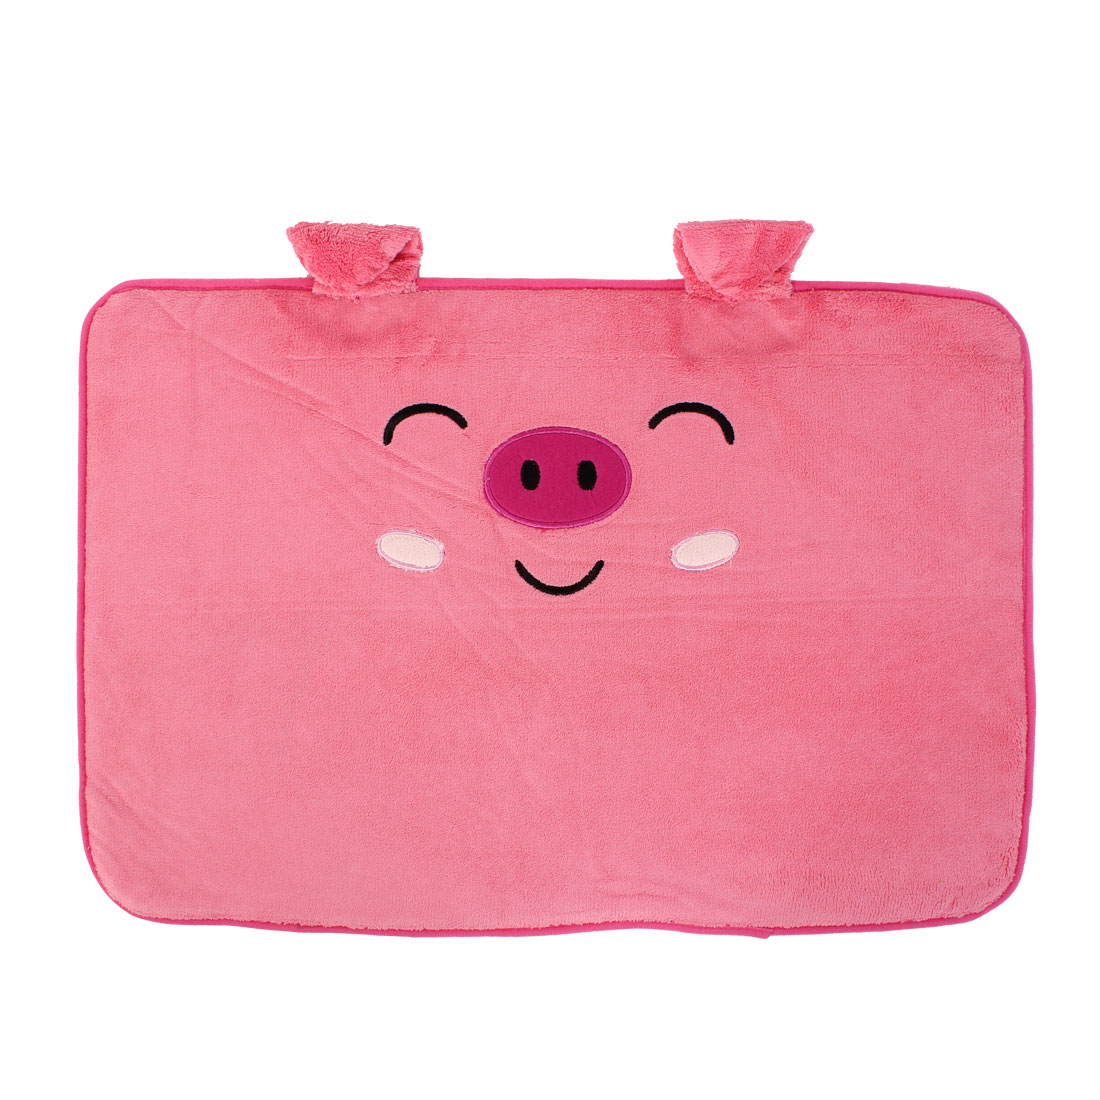 Pig Pattern Floor Mat Area Rug Carpet Footcloth 60cm x 40cm Pink